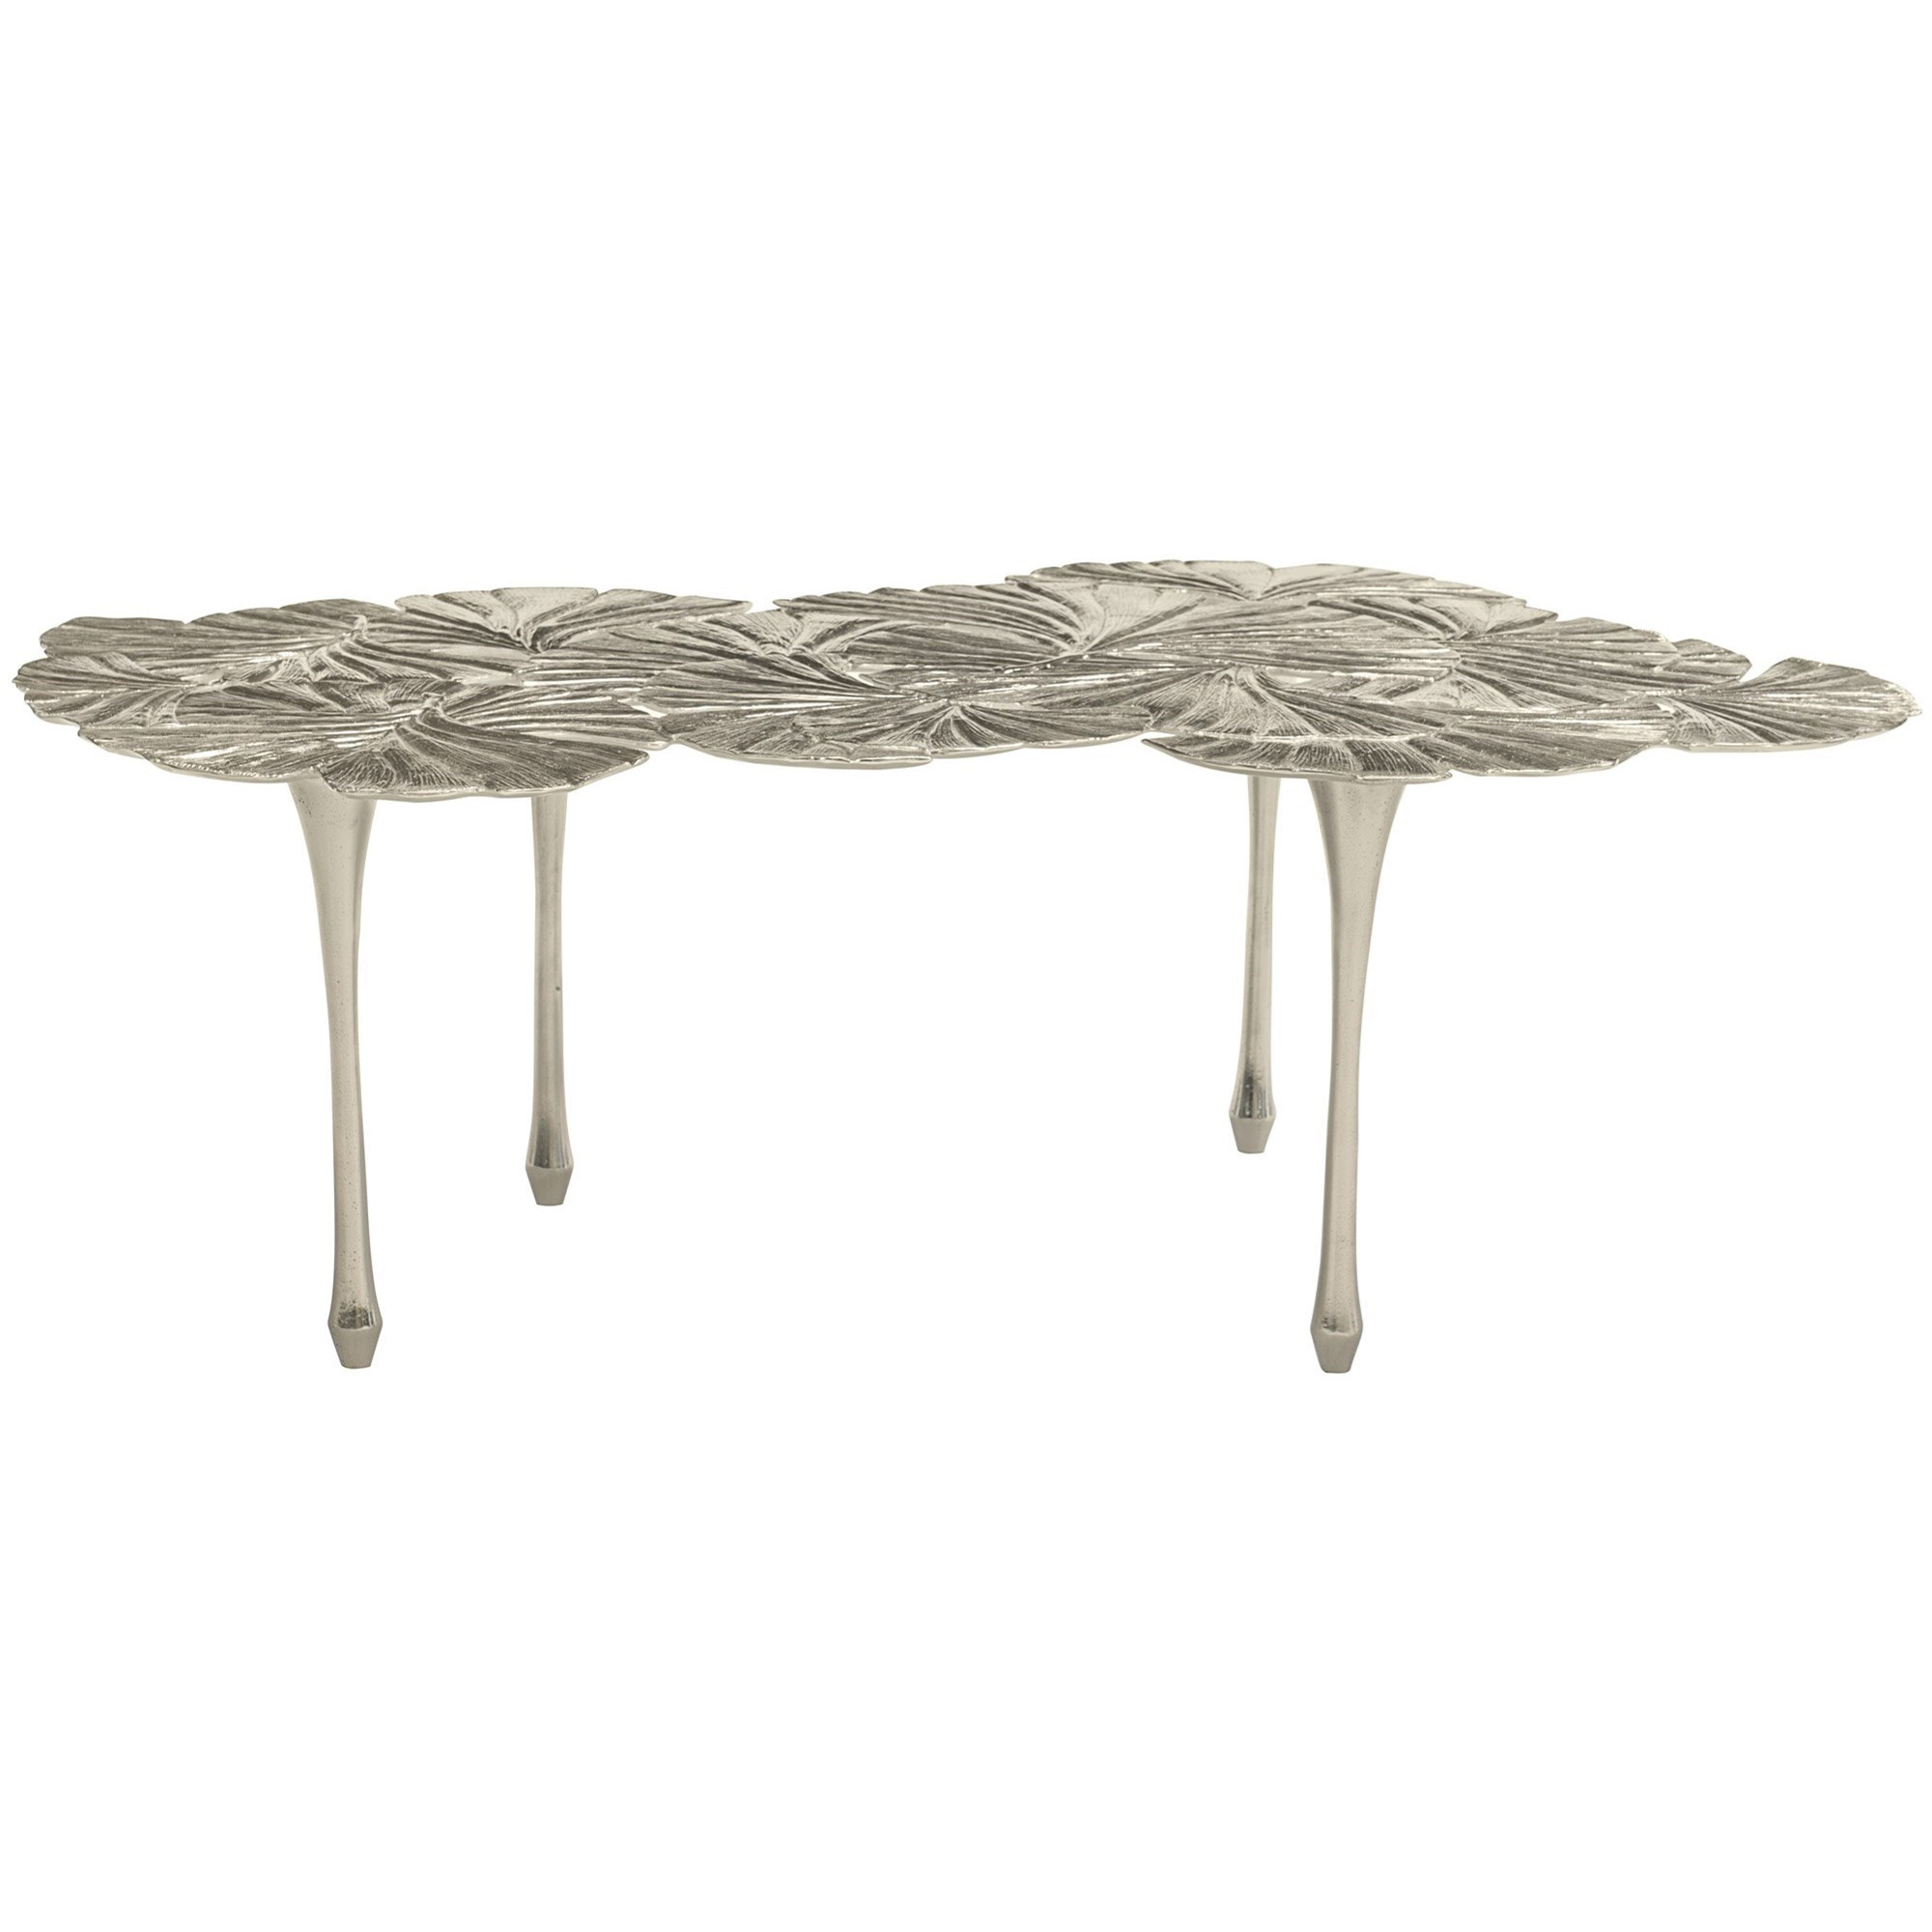 Interiors - Annabella Cocktail Table by Bernhardt at C. S. Wo & Sons California